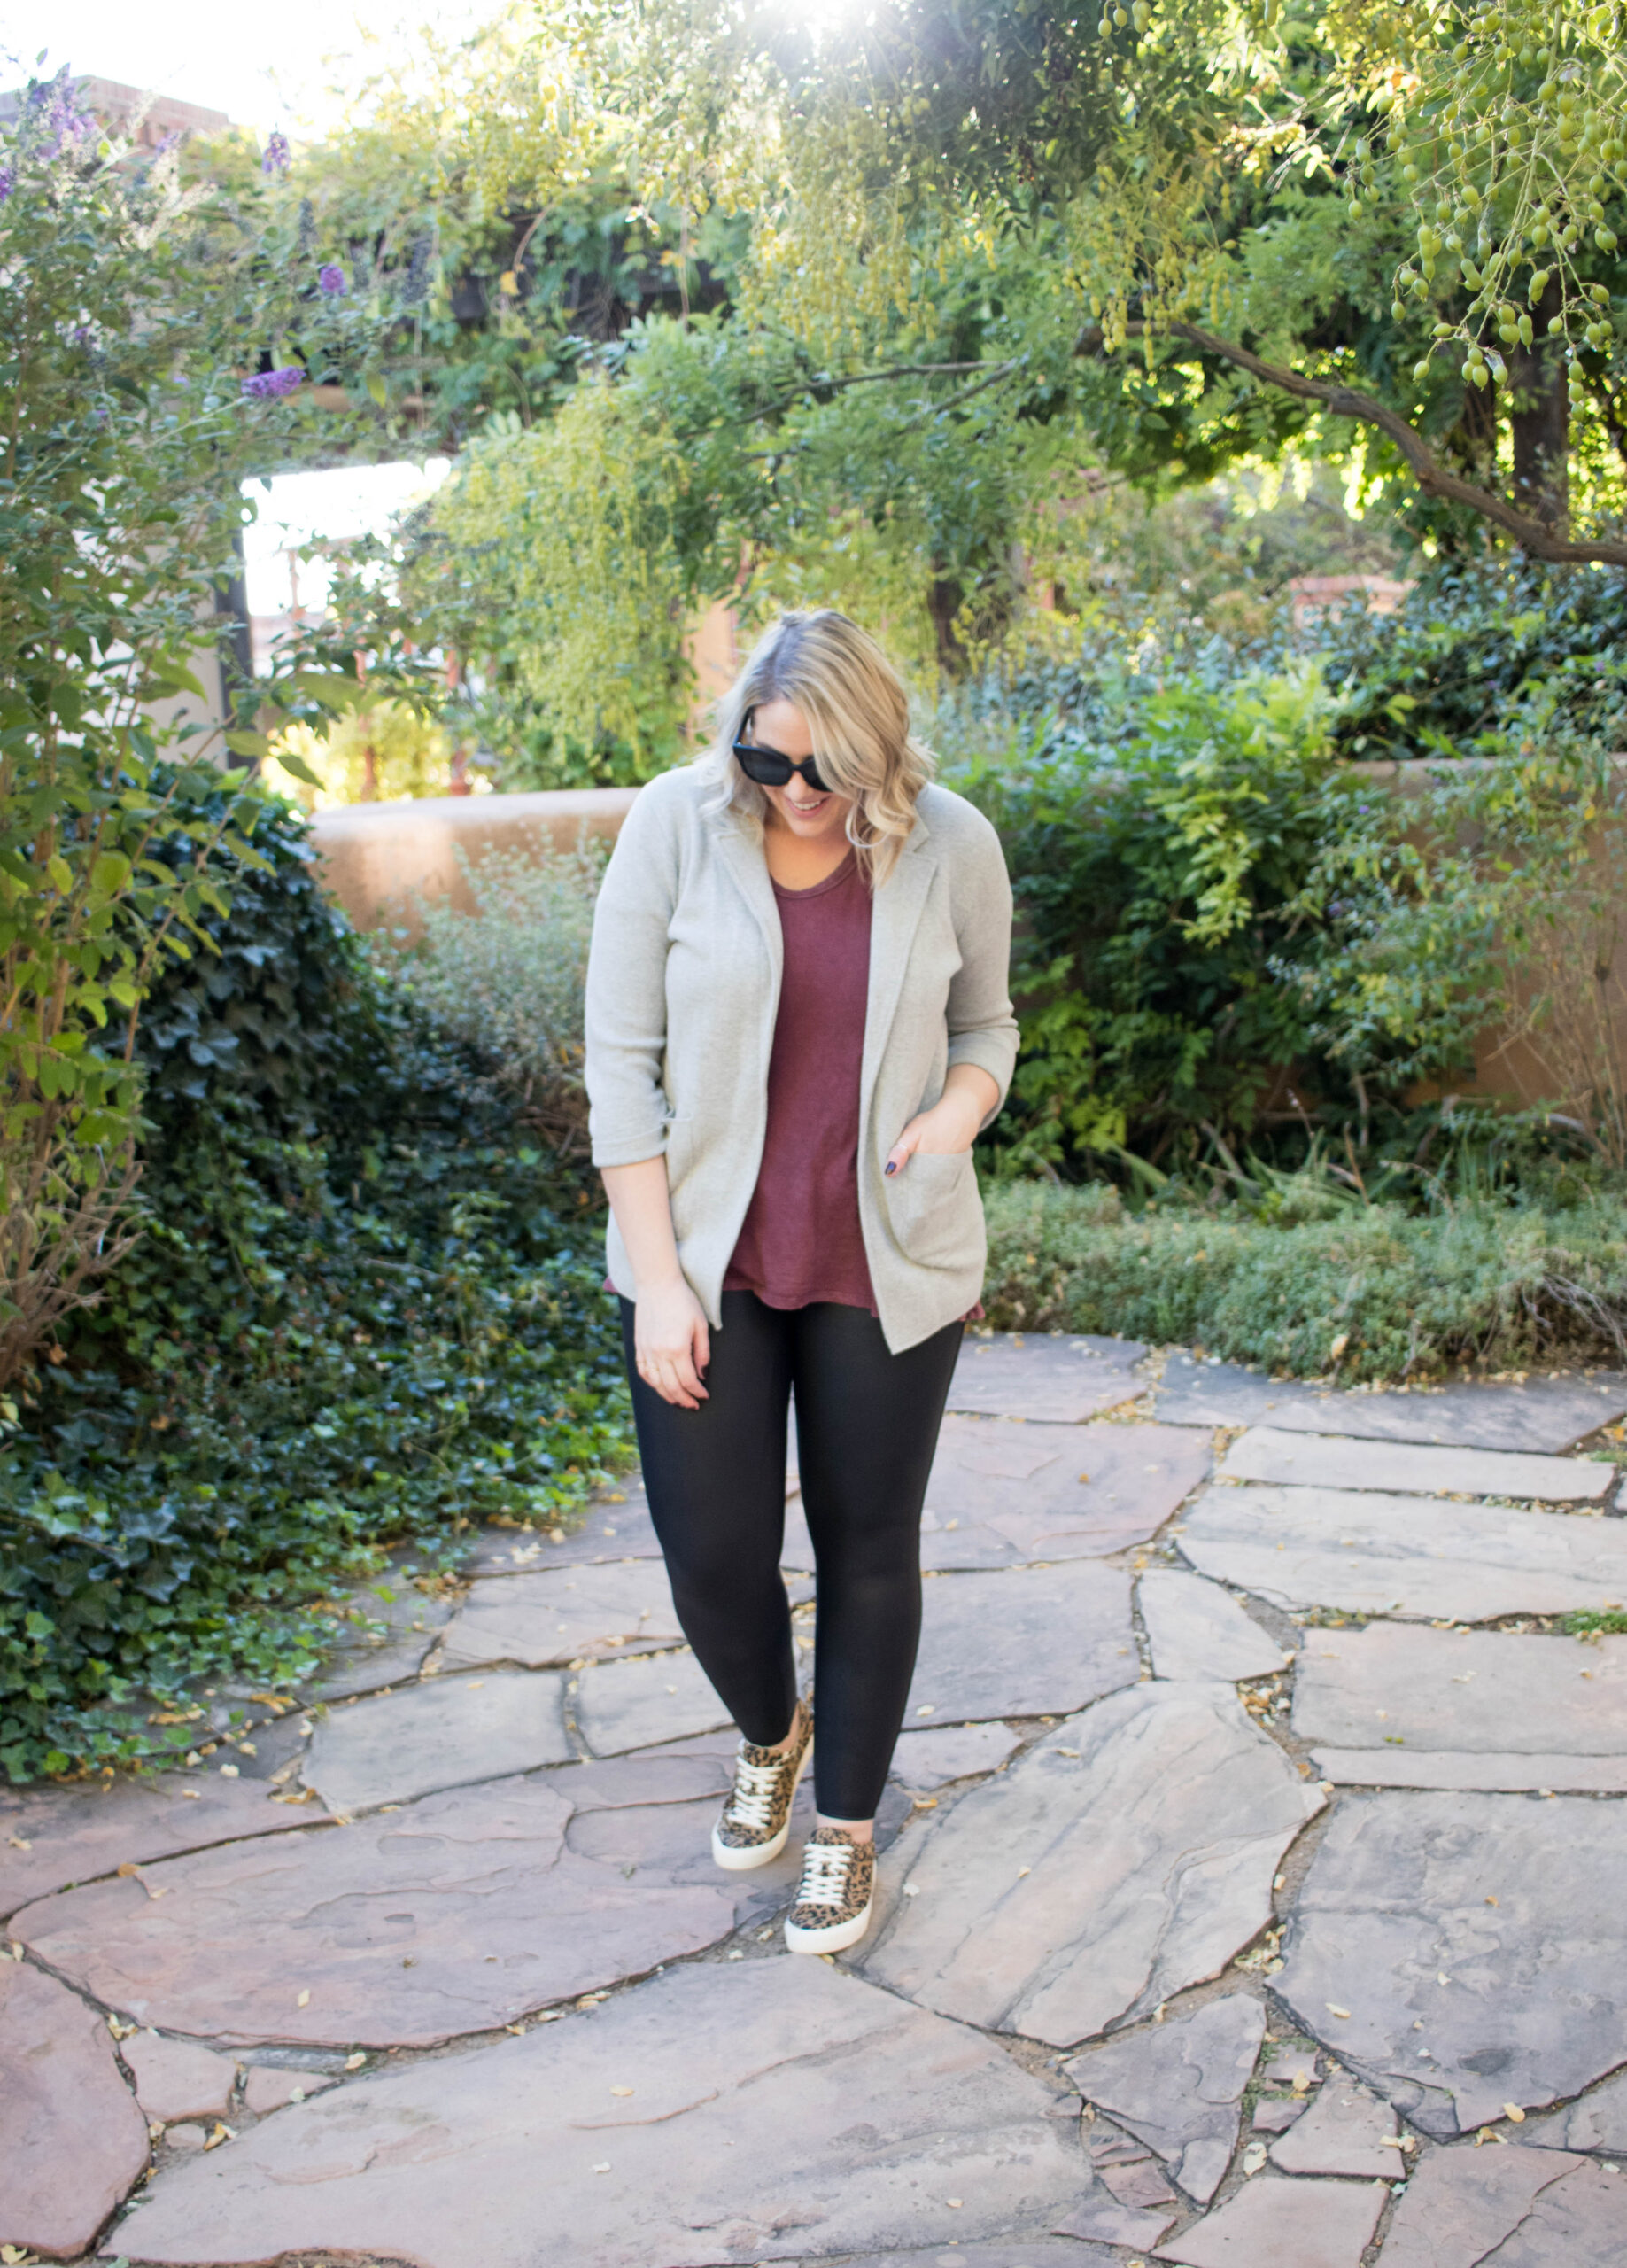 spanx faux leather leggings outfit for fall #spanx #fallfashion #leopardshoes